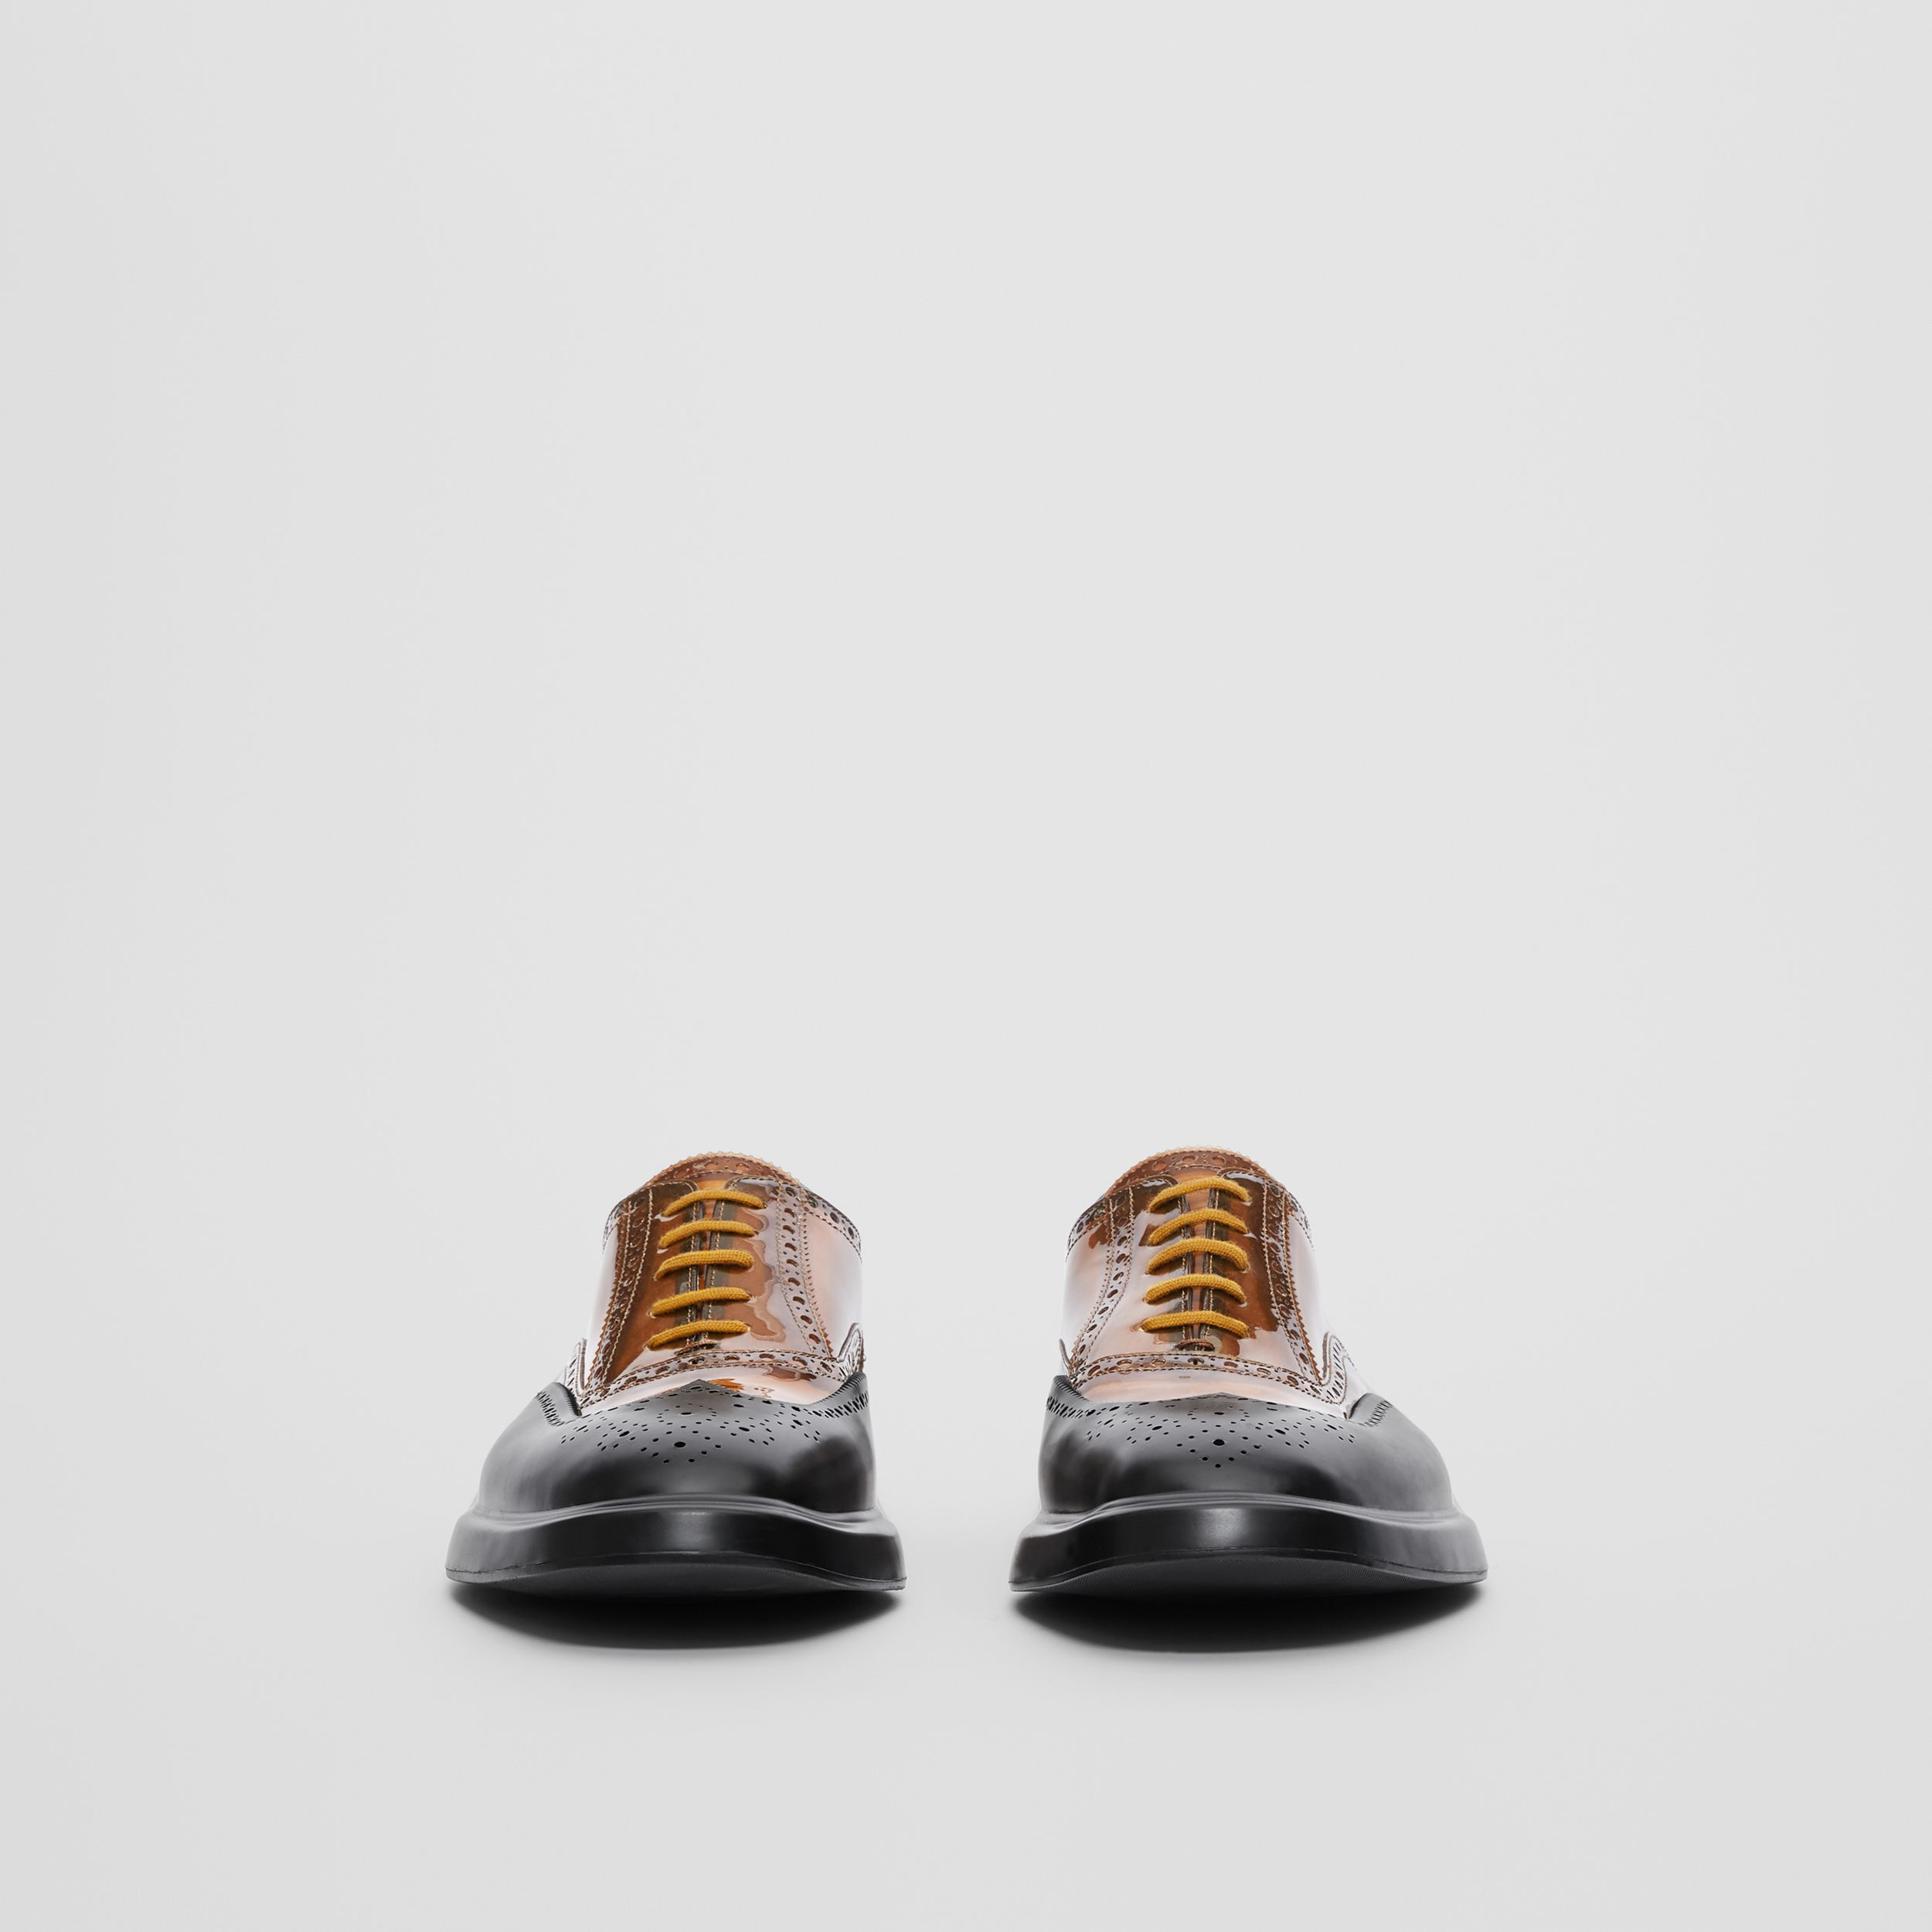 Toe Cap Detail Vinyl and Leather Oxford Brogues in Brown/black - Men | Burberry United Kingdom - 4